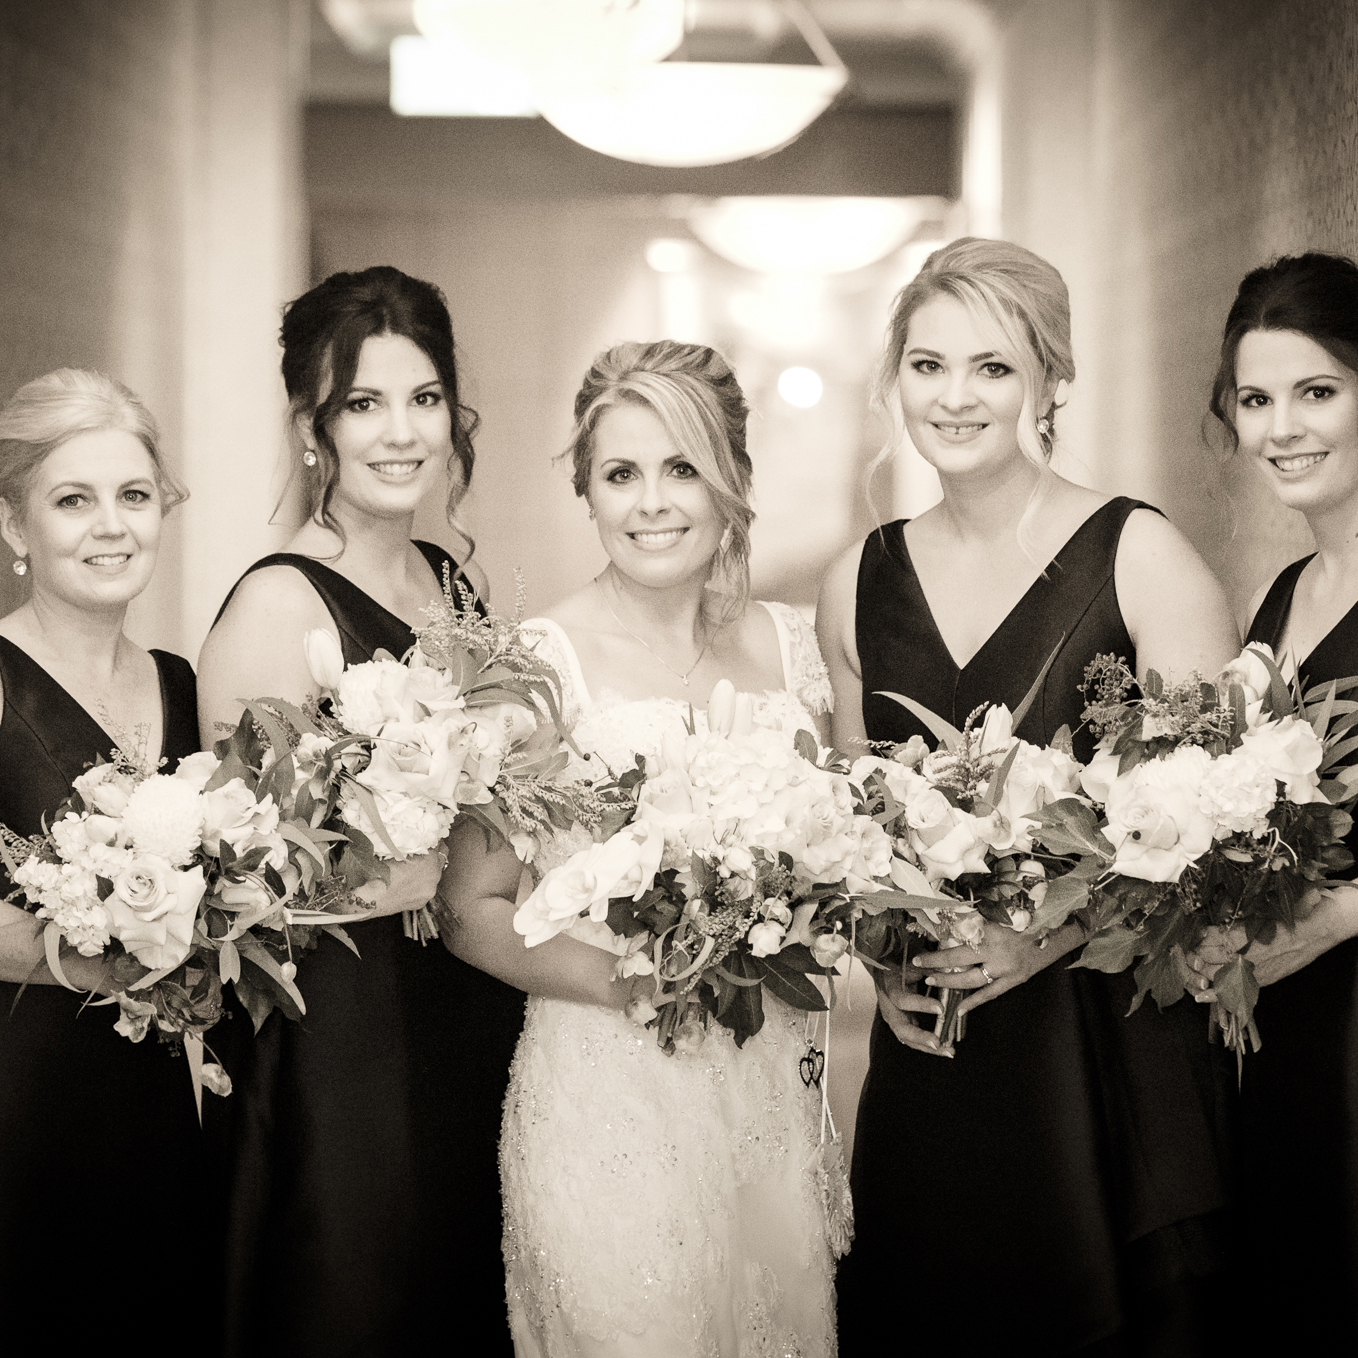 katherine - David Phillips - Protogweddings